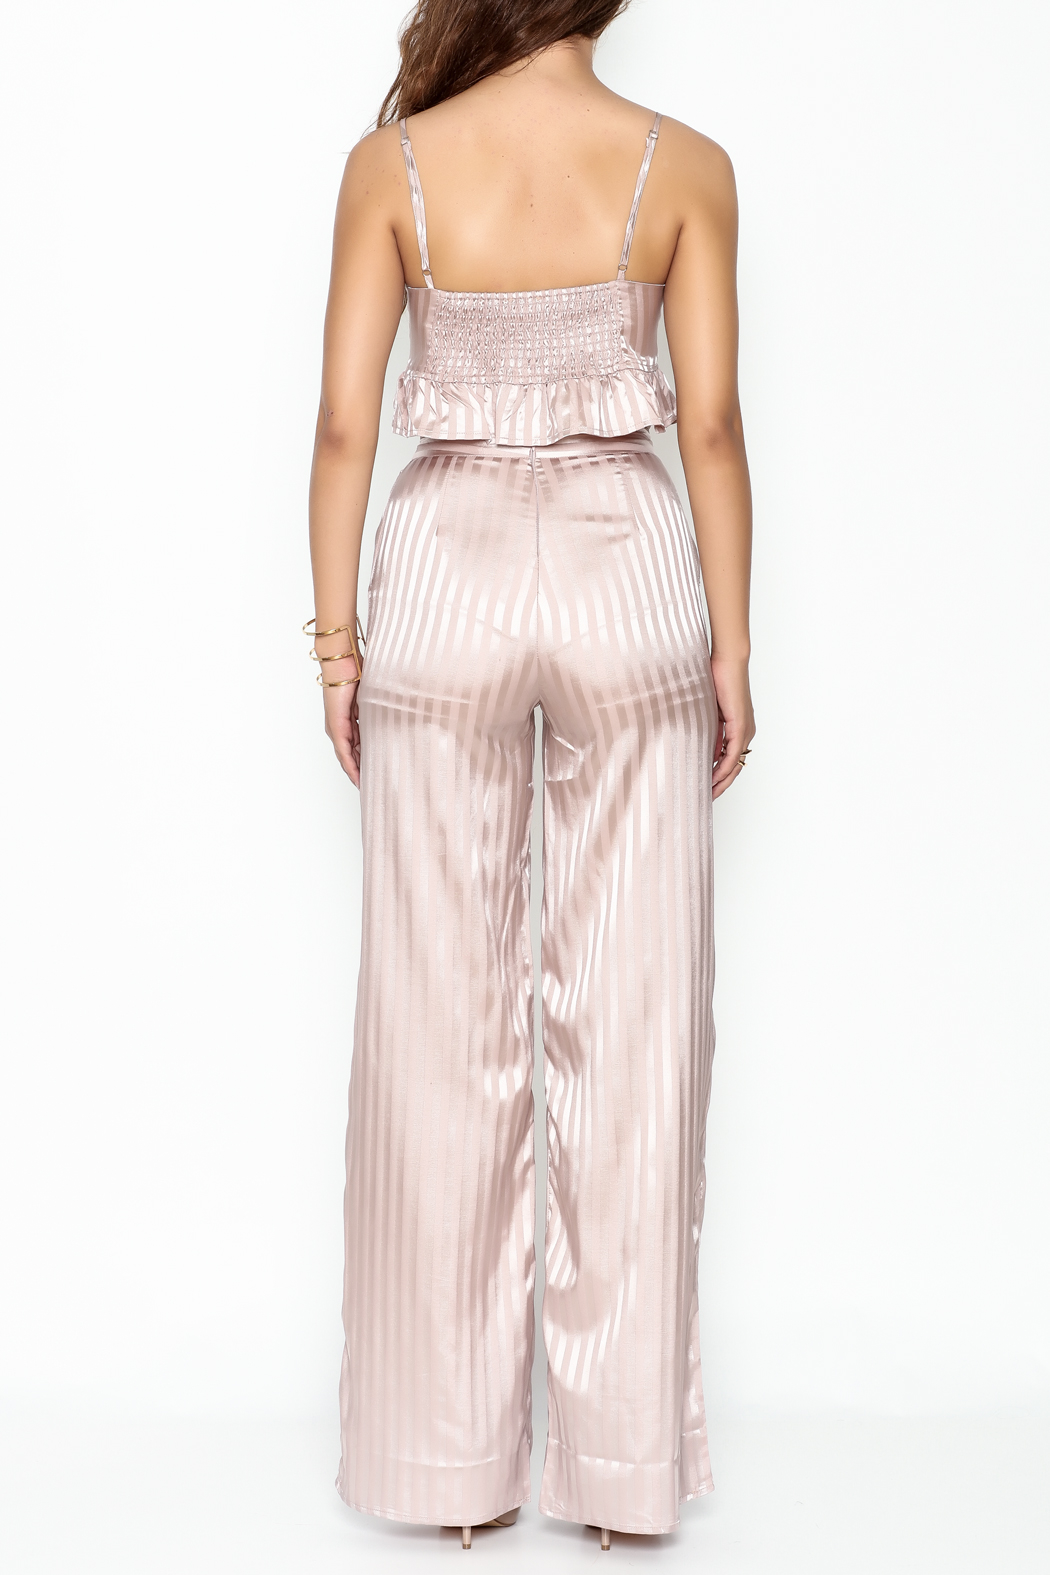 L'atiste Stripe Pant Set - Back Cropped Image